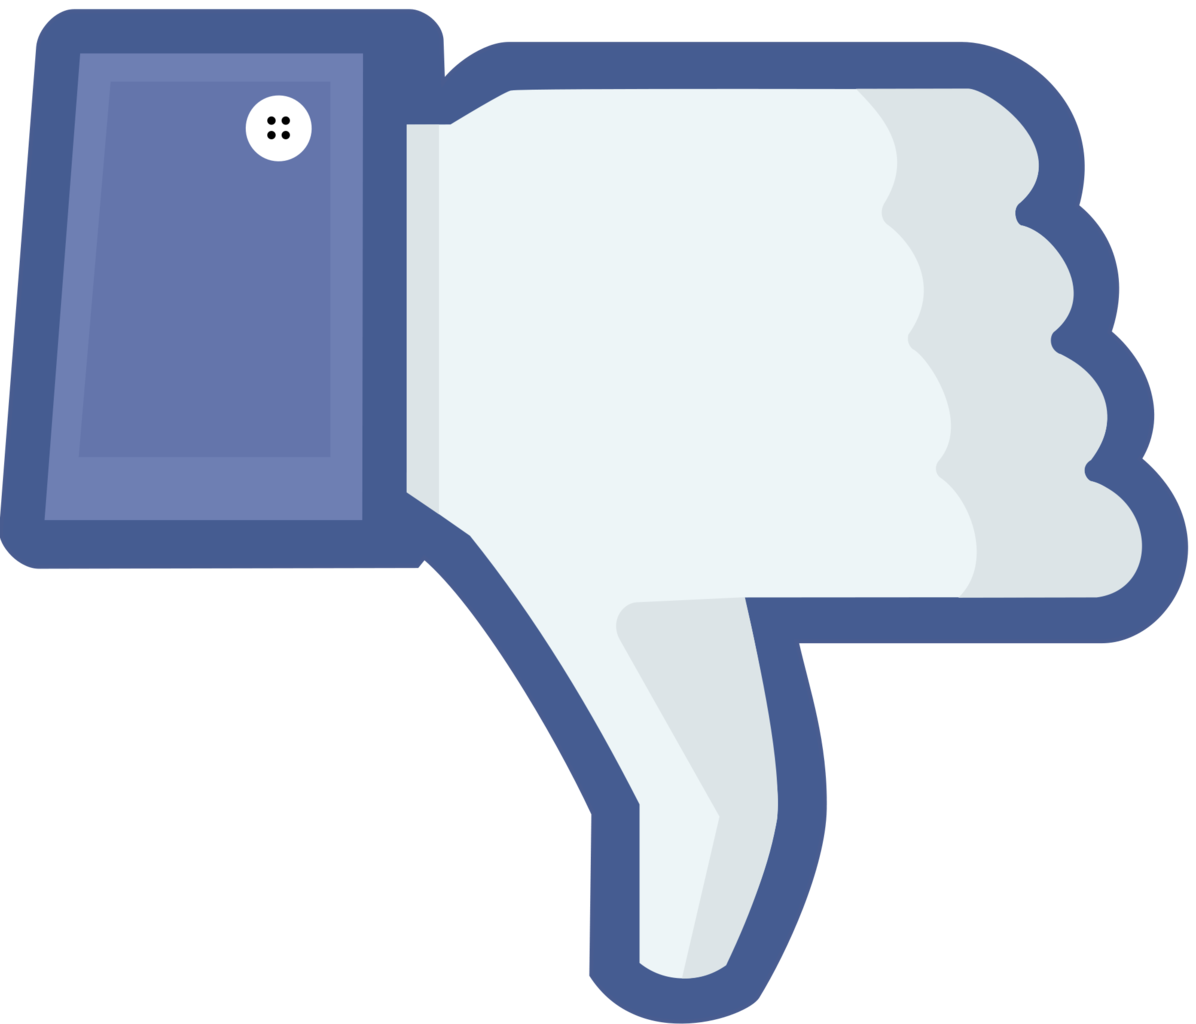 Facebook Transparent Logo Facebook-logo-png-transparent-